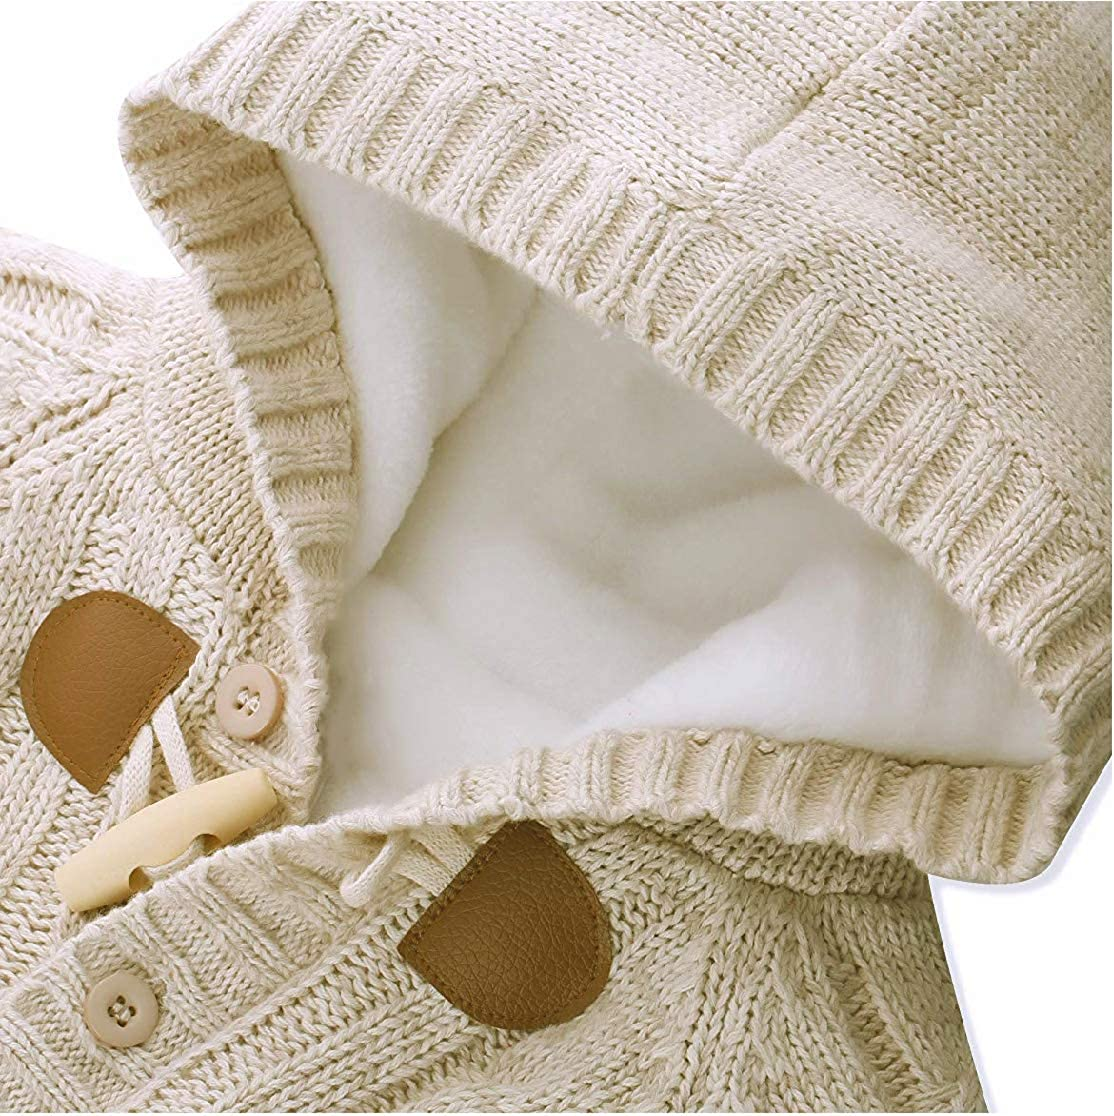 JGJSTAR Baby Toddler Boys Girls Hooded Cable Knit Cardigan Sweater Cotton Warm Christmas Jacket Coat Outwear